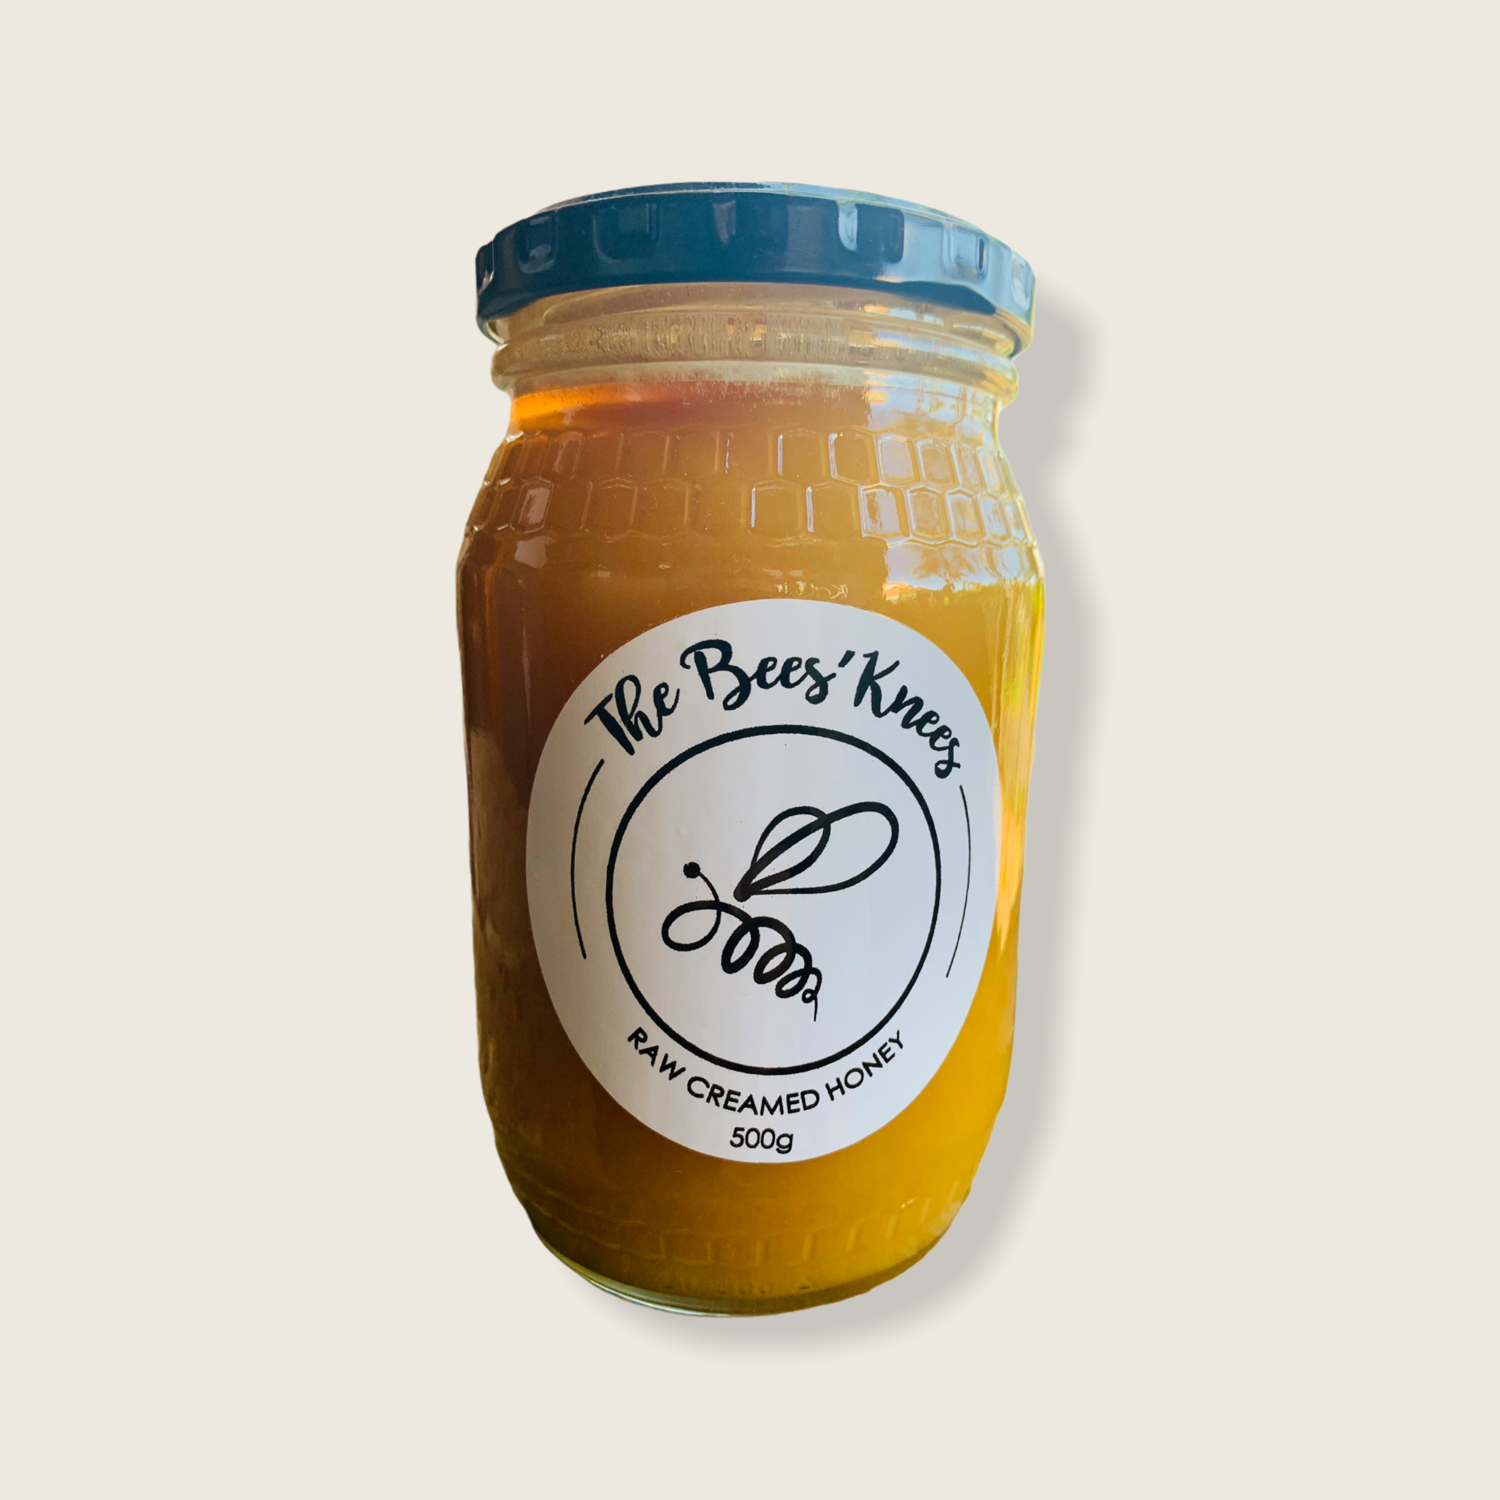 The Bees Knees Raw creamed honey